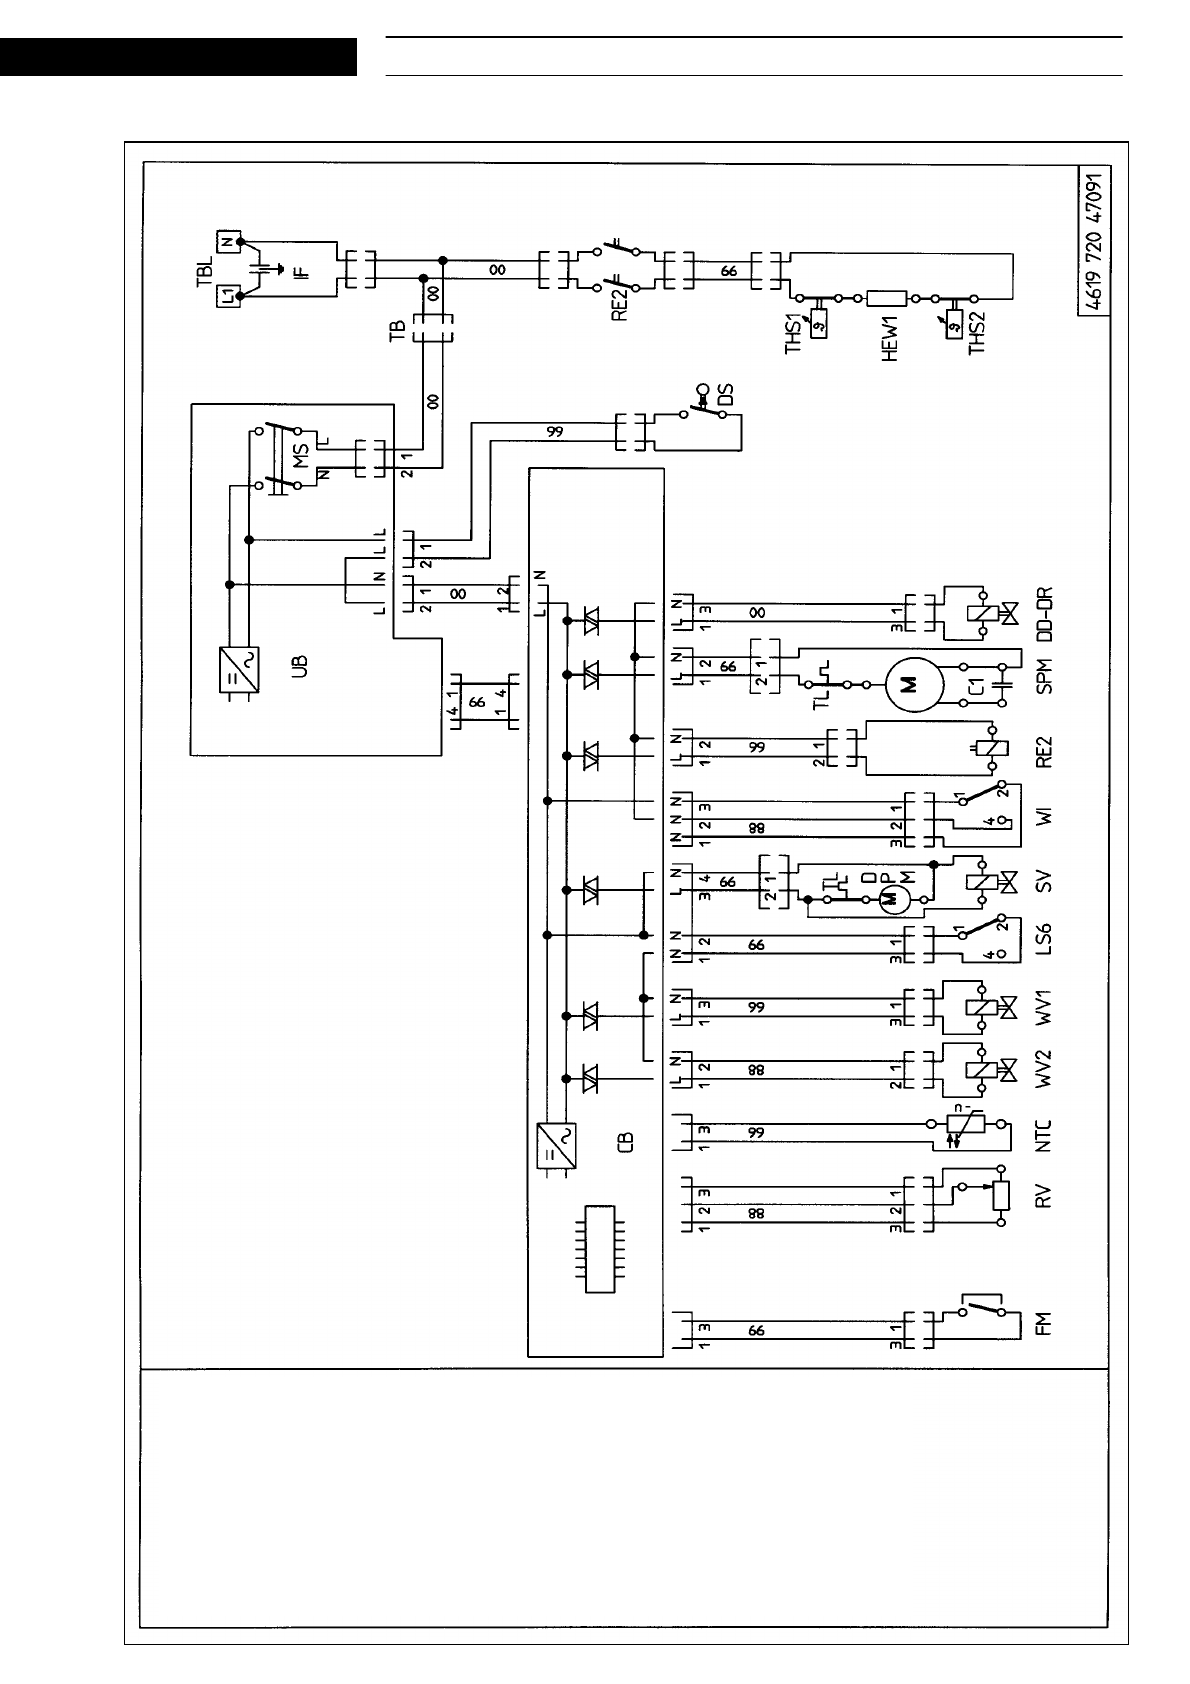 c873f67a 3bb5 4f53 b66b bdc2b0c4d30d bg9 whirlpool dishwasher wiring diagram 28 images whirlpool whirlpool dishwasher wiring diagram at creativeand.co